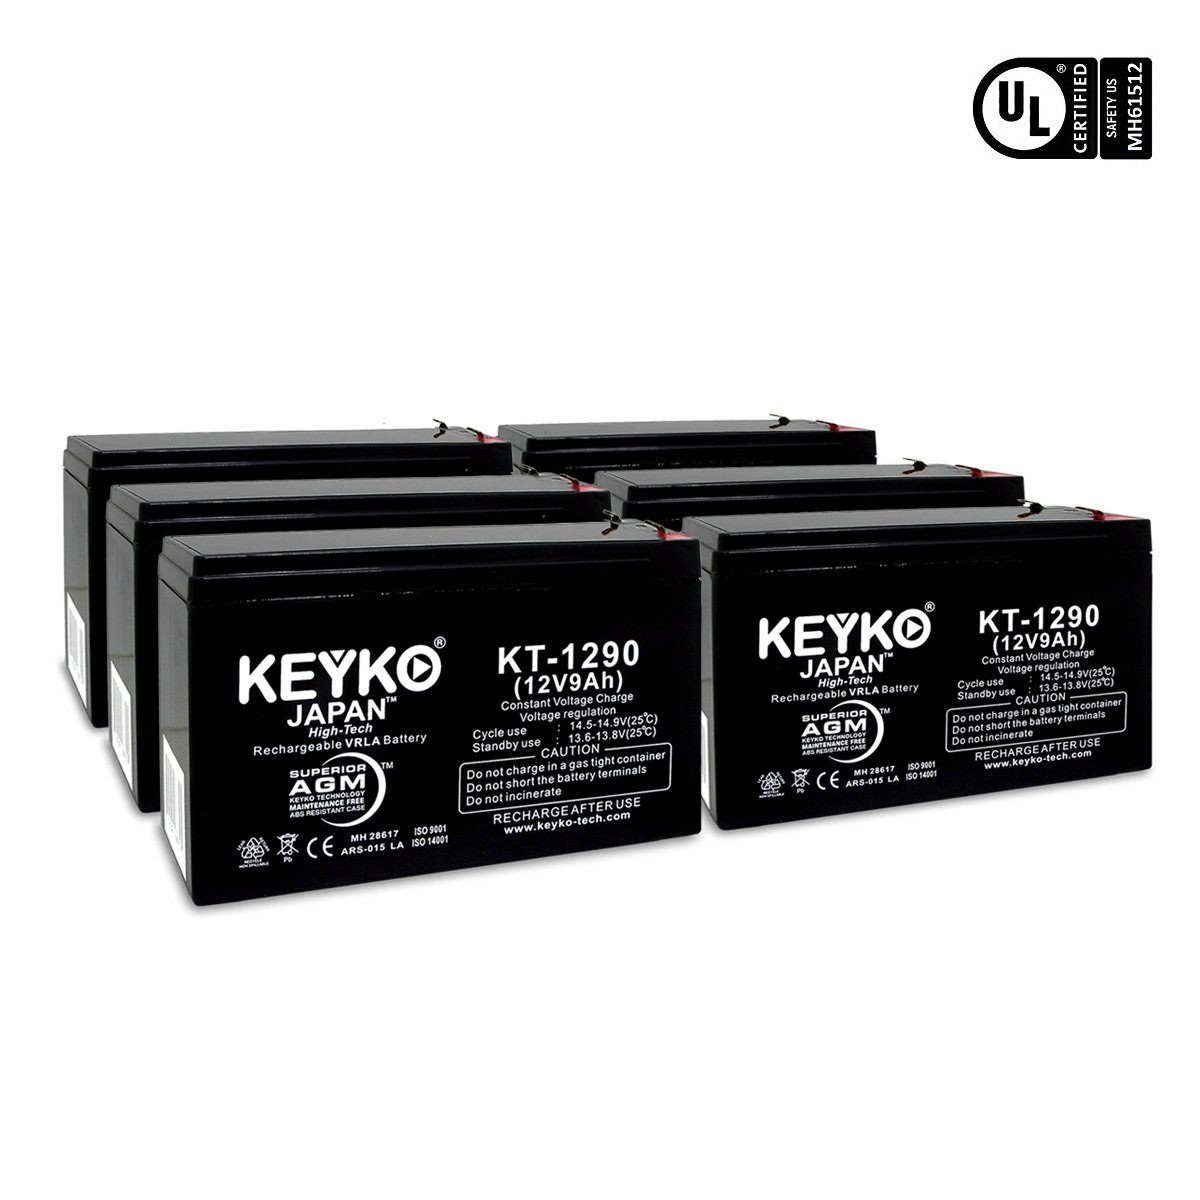 XS1500 APC RCB109 APC BACK-UPS 12V 9Ah / REAL 9.0 Amp Battery PS-1290 AGM / SLA Sealed Lead Acid Rechargeable Genuine KEYKO - F2 Terminal - 6 Batteries